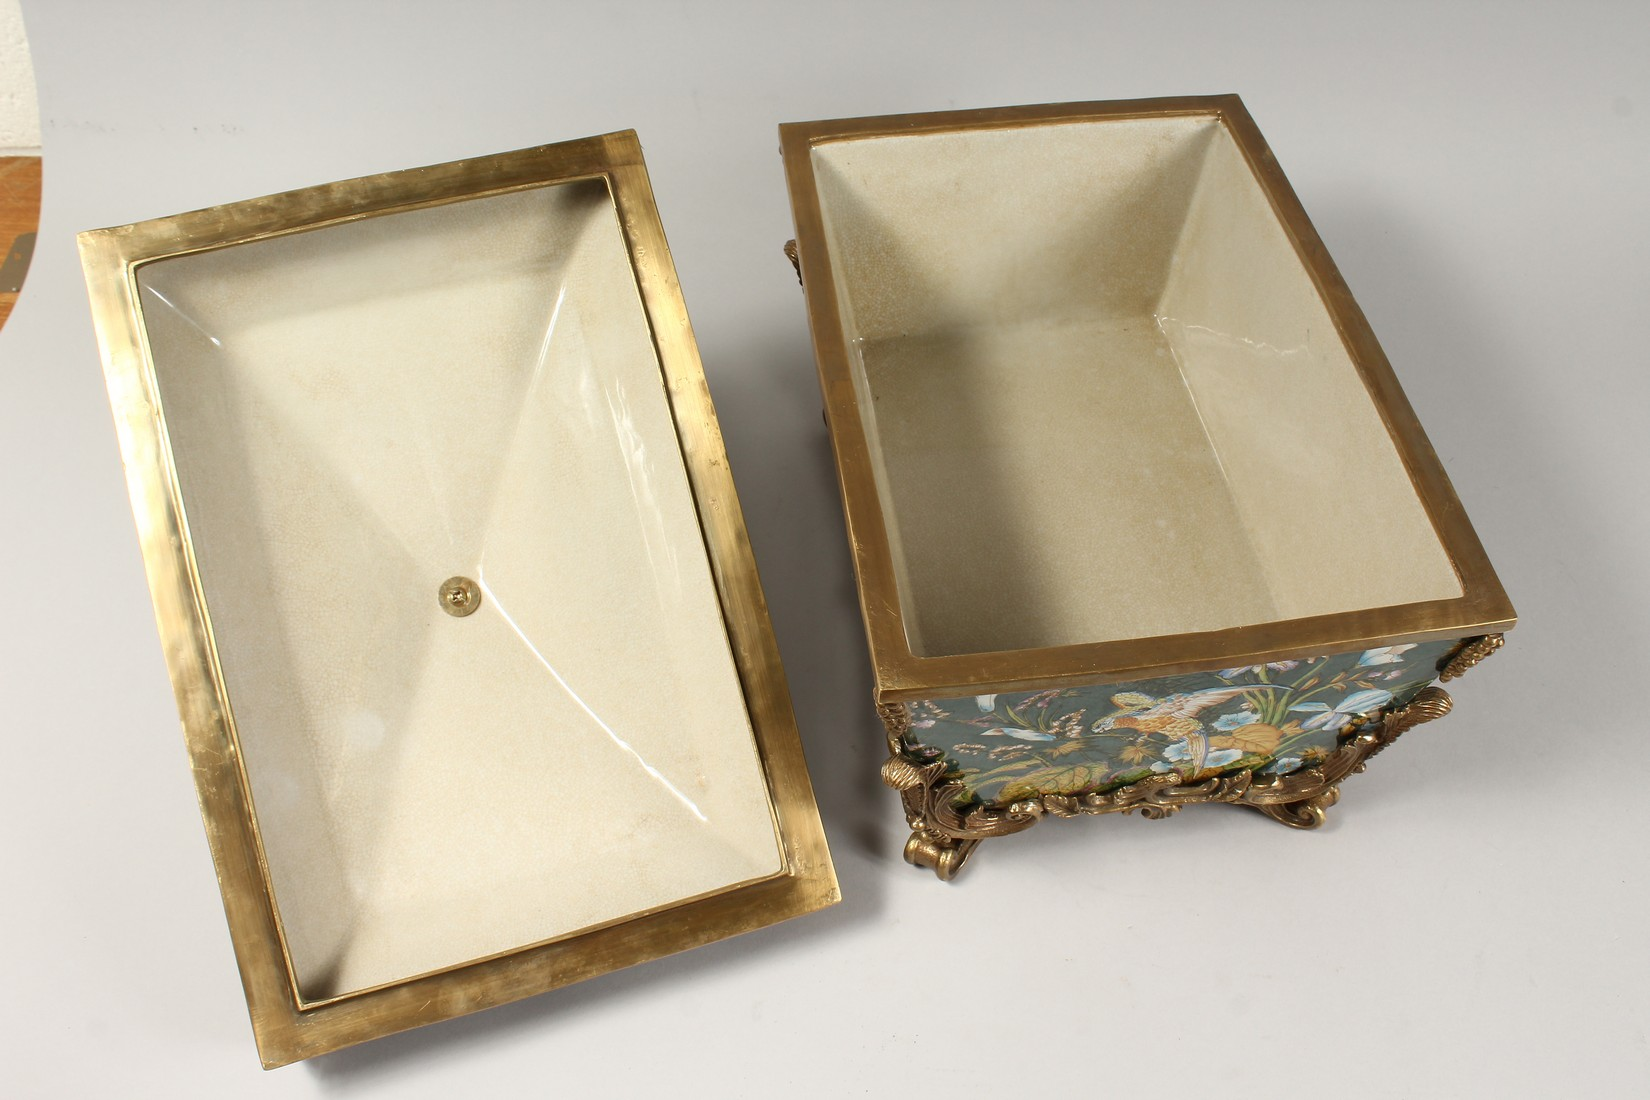 A LARGE CONTINENTAL STYLE PORCELAIN AND BRONZE MOUNTED CASKET, decorated with exotic flowers and - Image 5 of 5